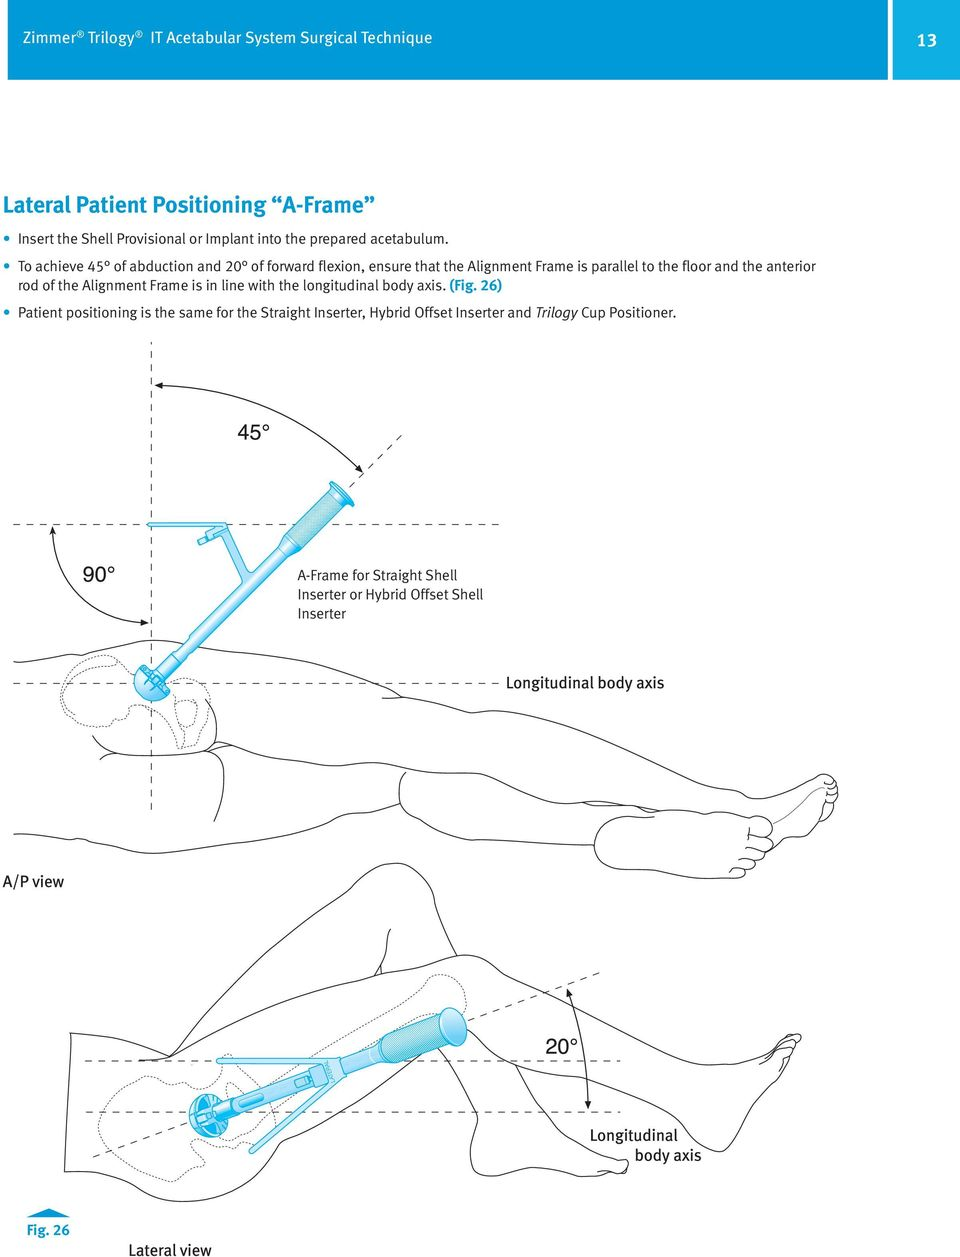 To achieve 45 of abduction and 20 of forward flexion, ensure that the Alignment Frame is parallel to the floor and the anterior rod of the